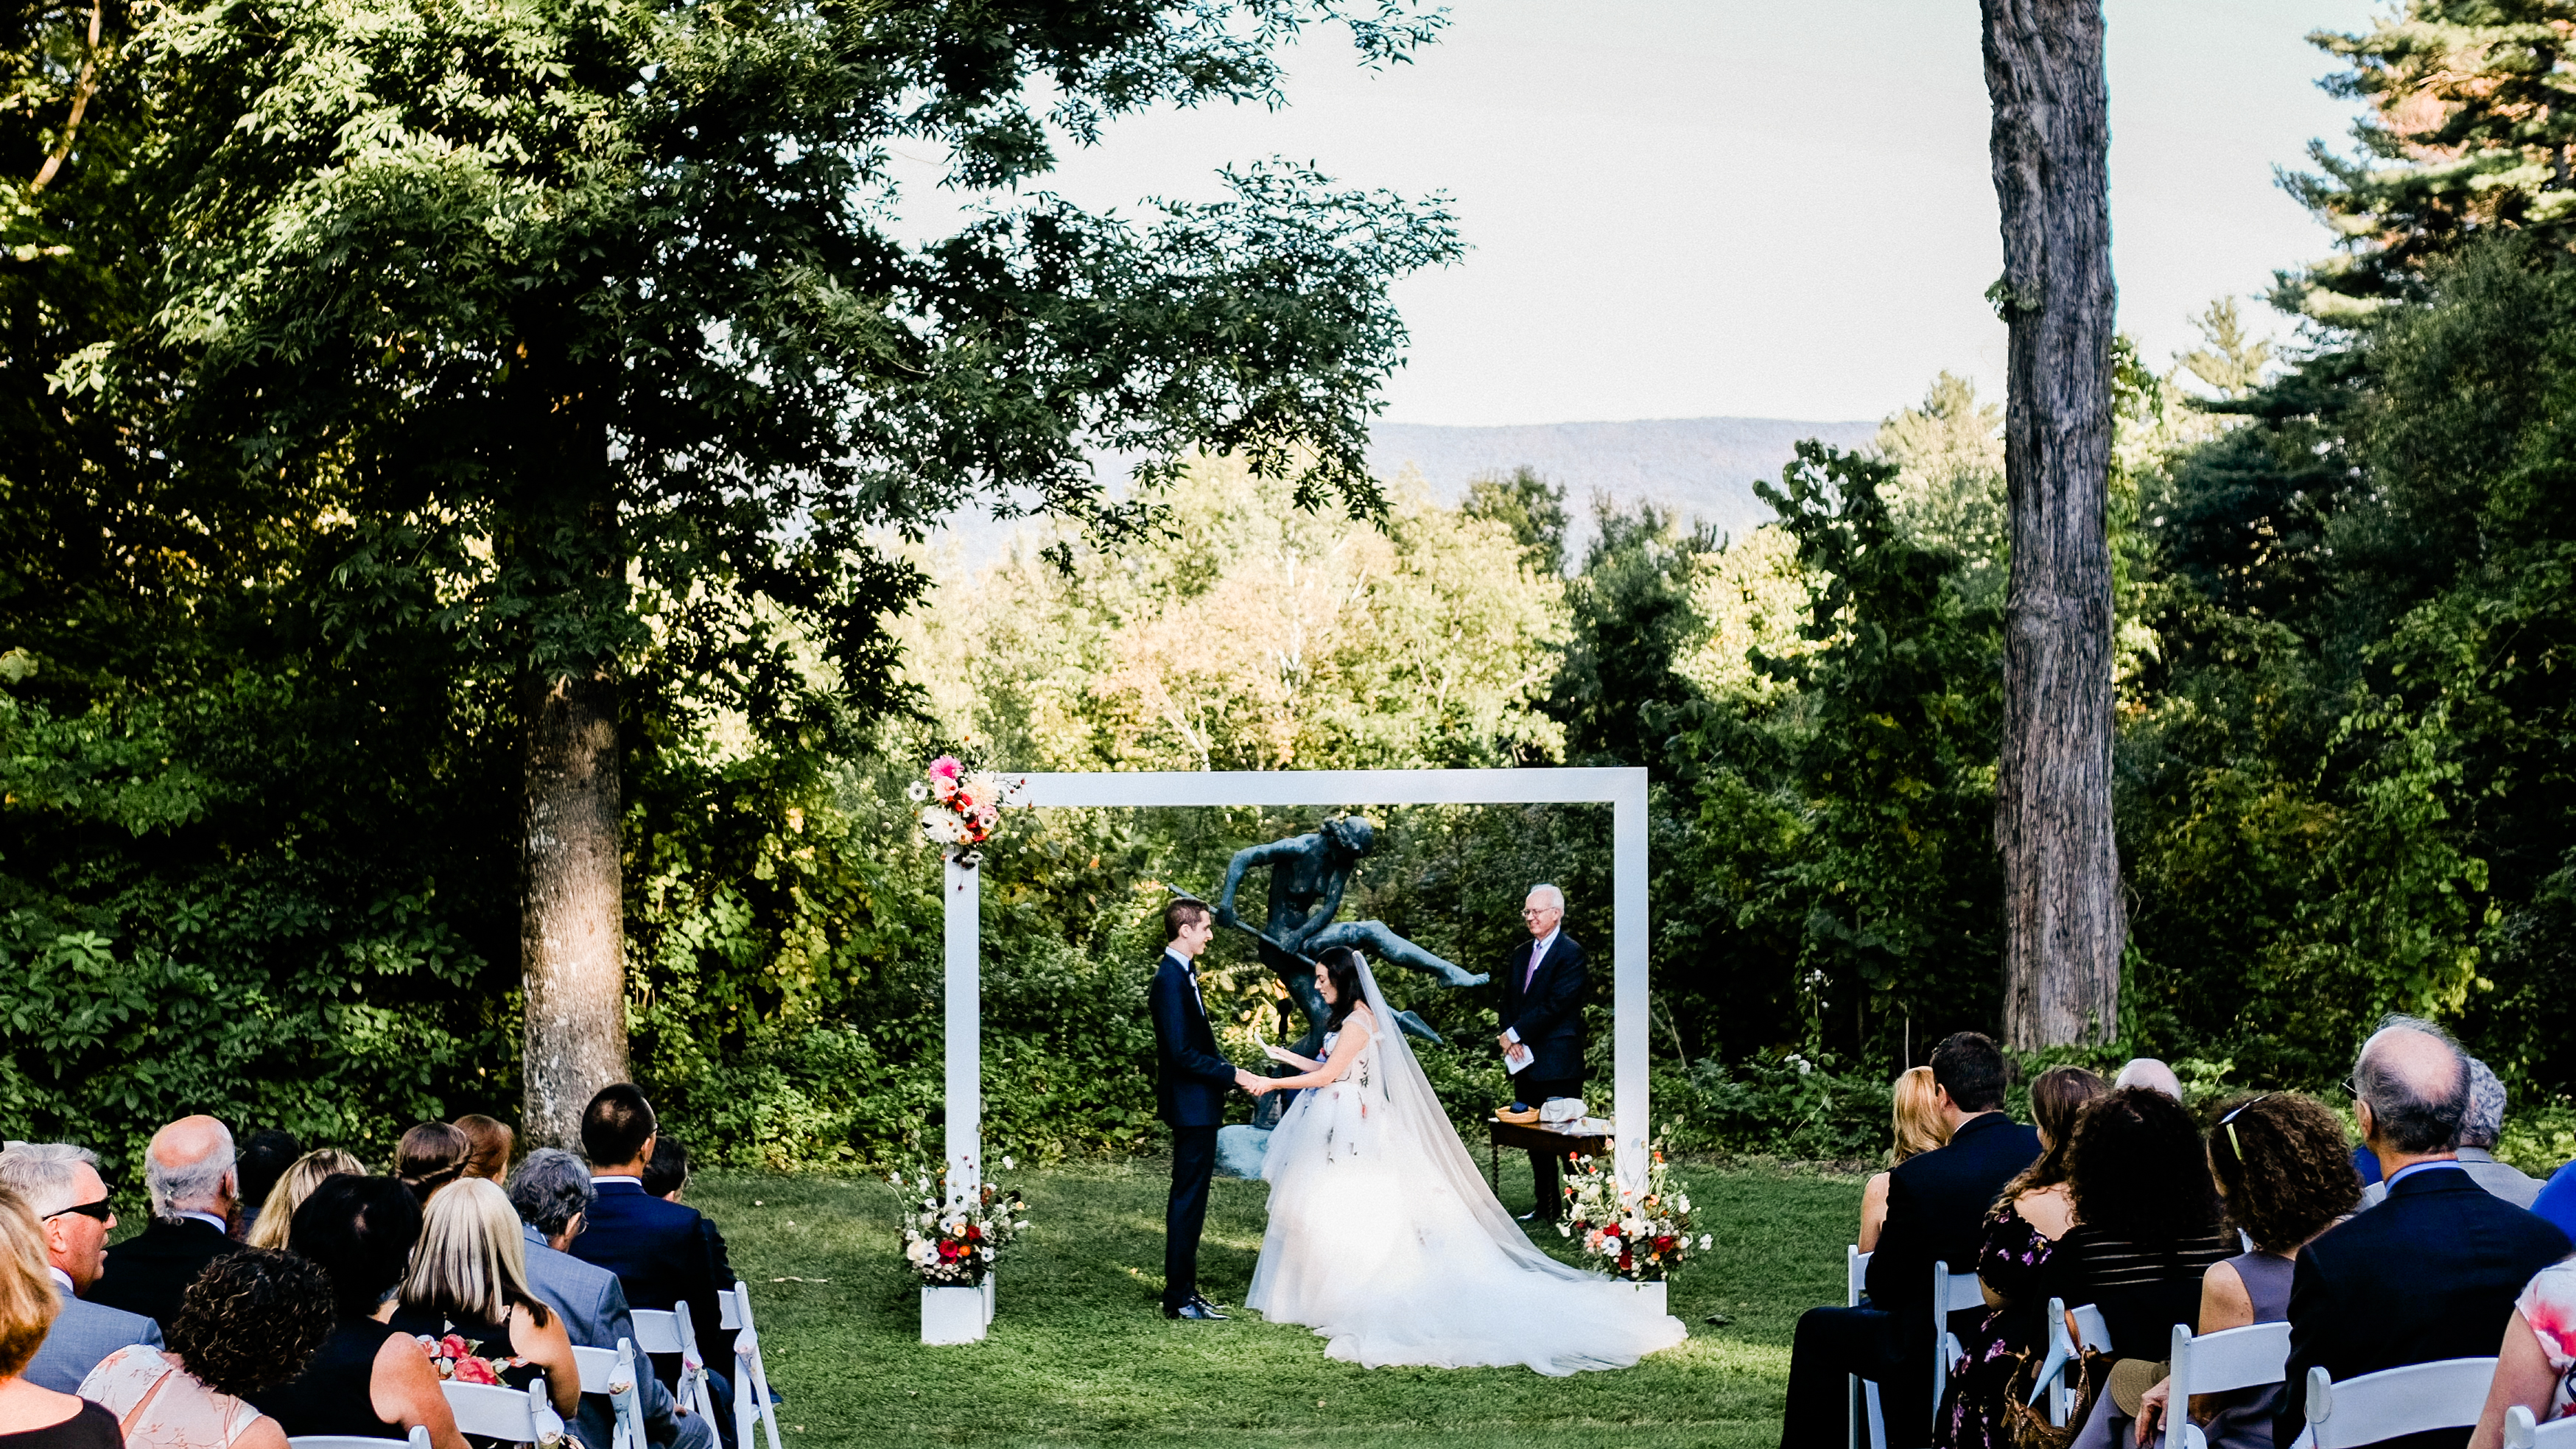 Michelle + Mike | Manchester, Vermont | Southern Vermont Arts Center